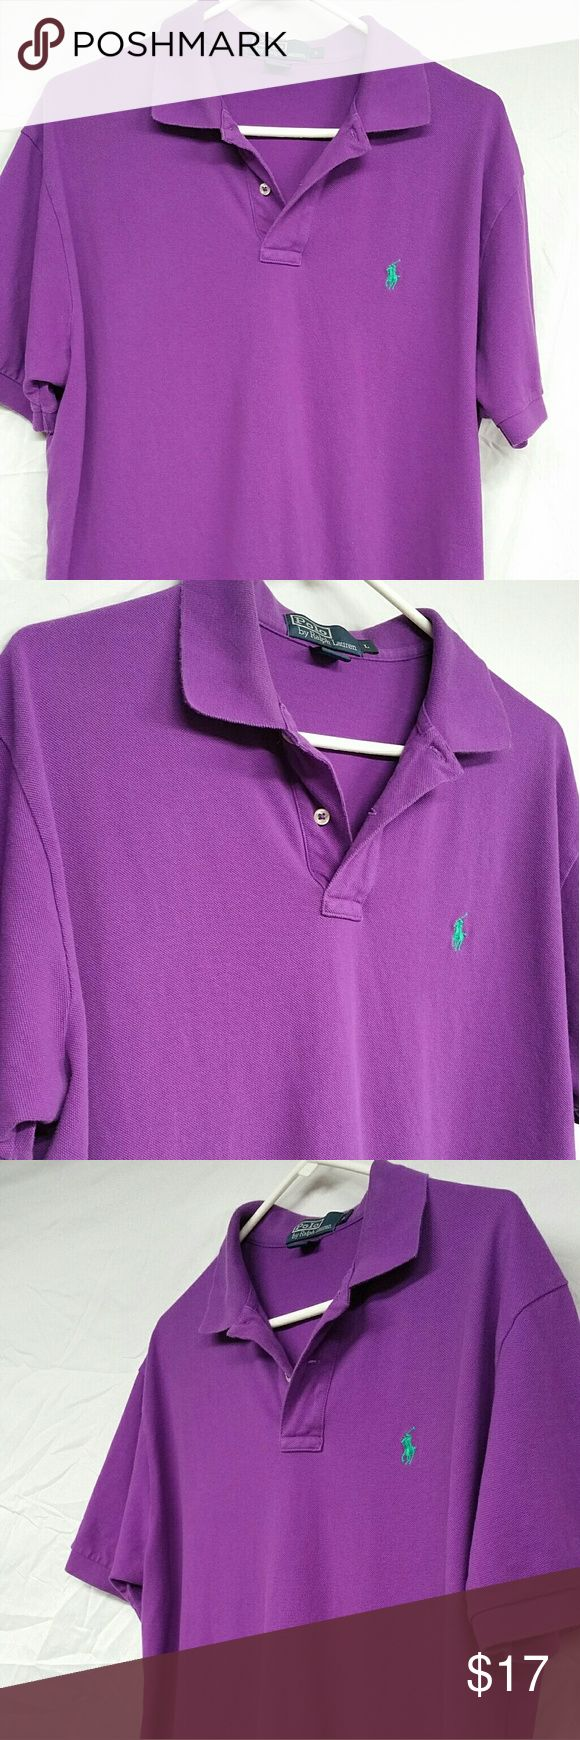 Mens Polo Ralph Lauren purple size L Very nice mens Polo Ralph Lauren.  Purple in color.  Not faded looking. No spots or rips. Polo by Ralph Lauren Shirts Polos